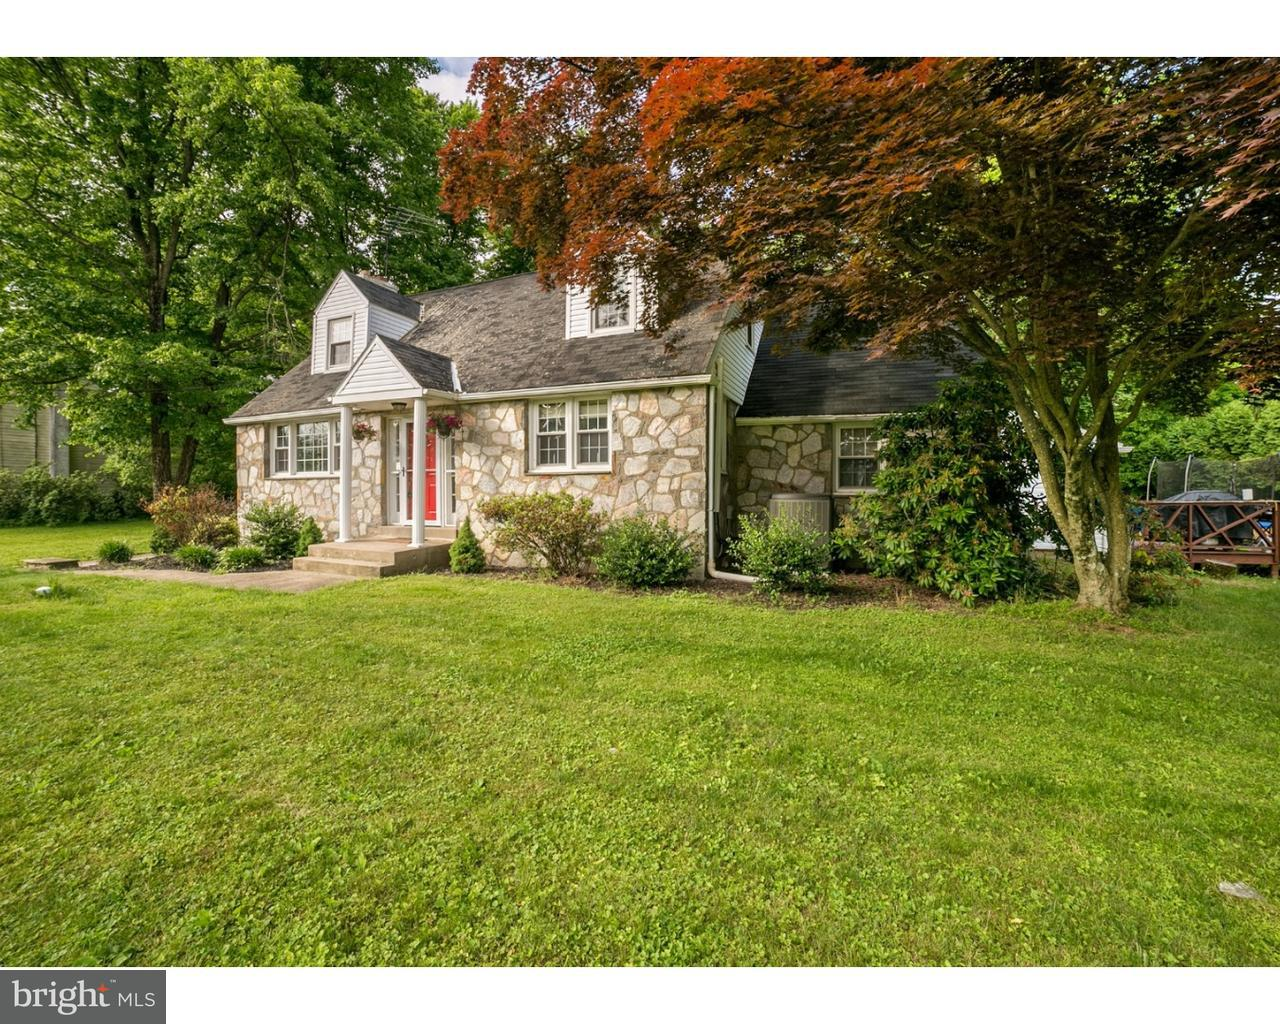 2556 MORRIS RD, LANSDALE - Listed at $339,000, LANSDALE